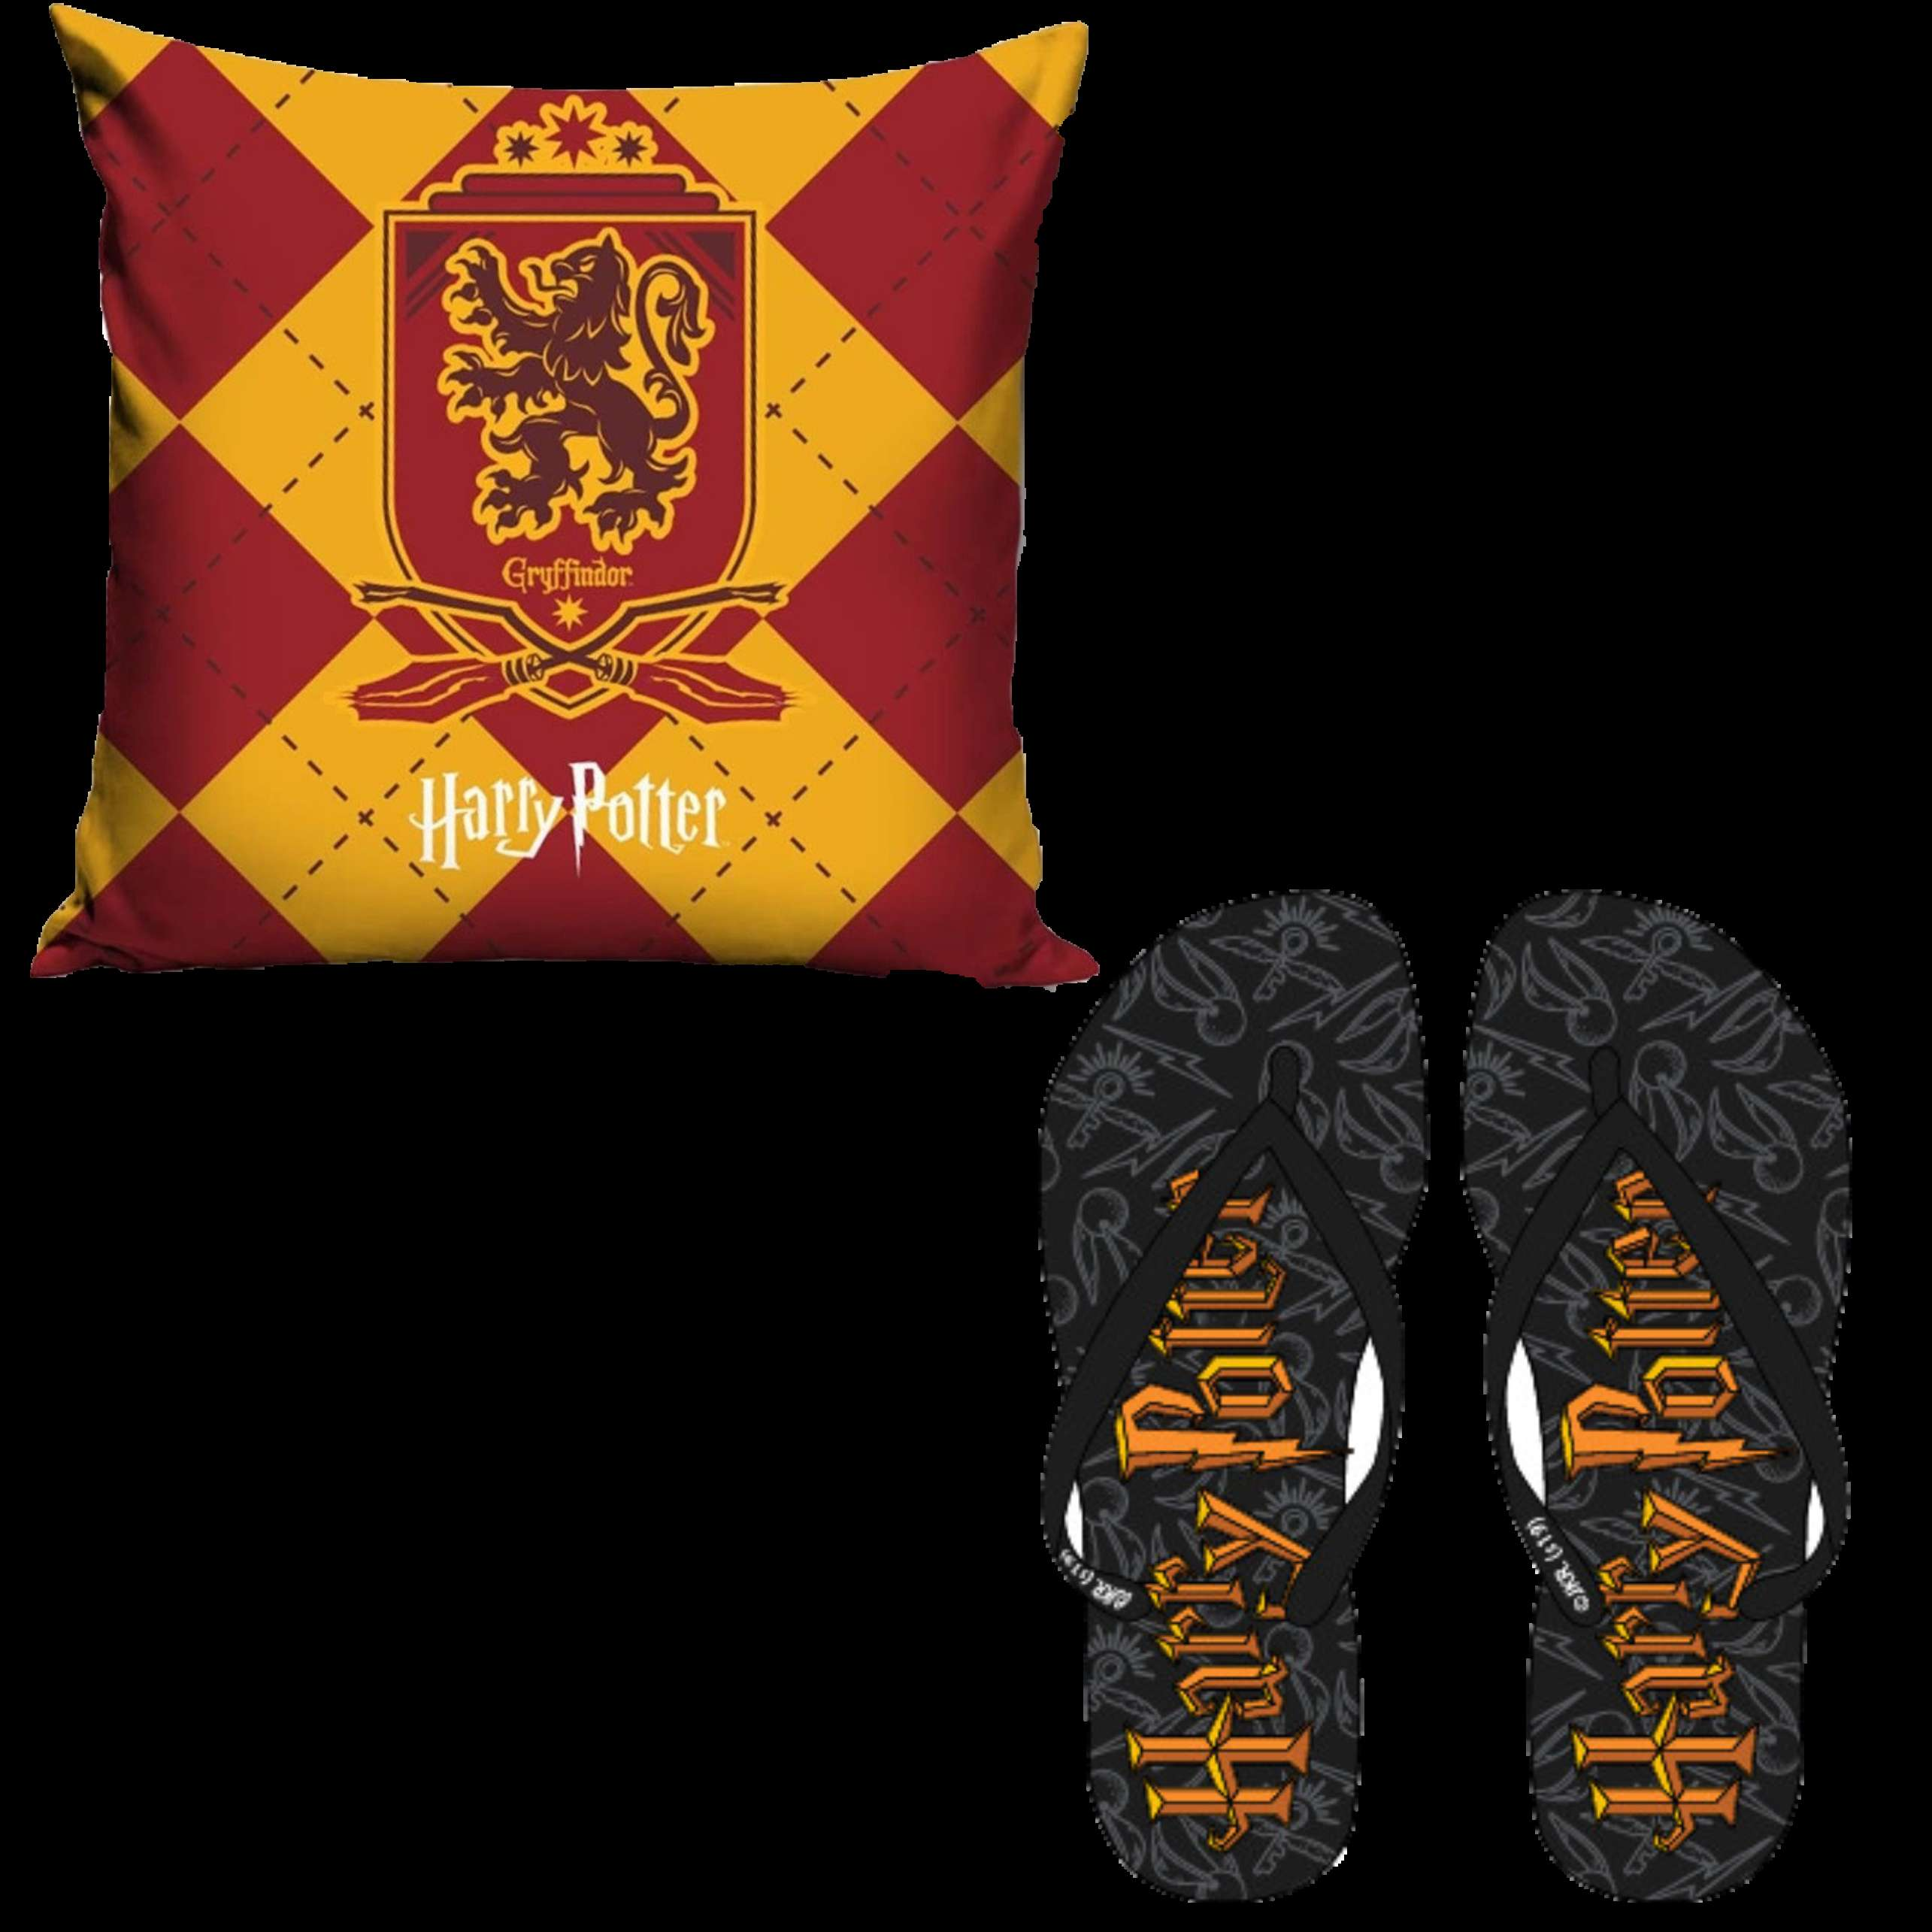 Official Warner Bros Harry Potter Griffindor Pillowcase And Flip Flop Set